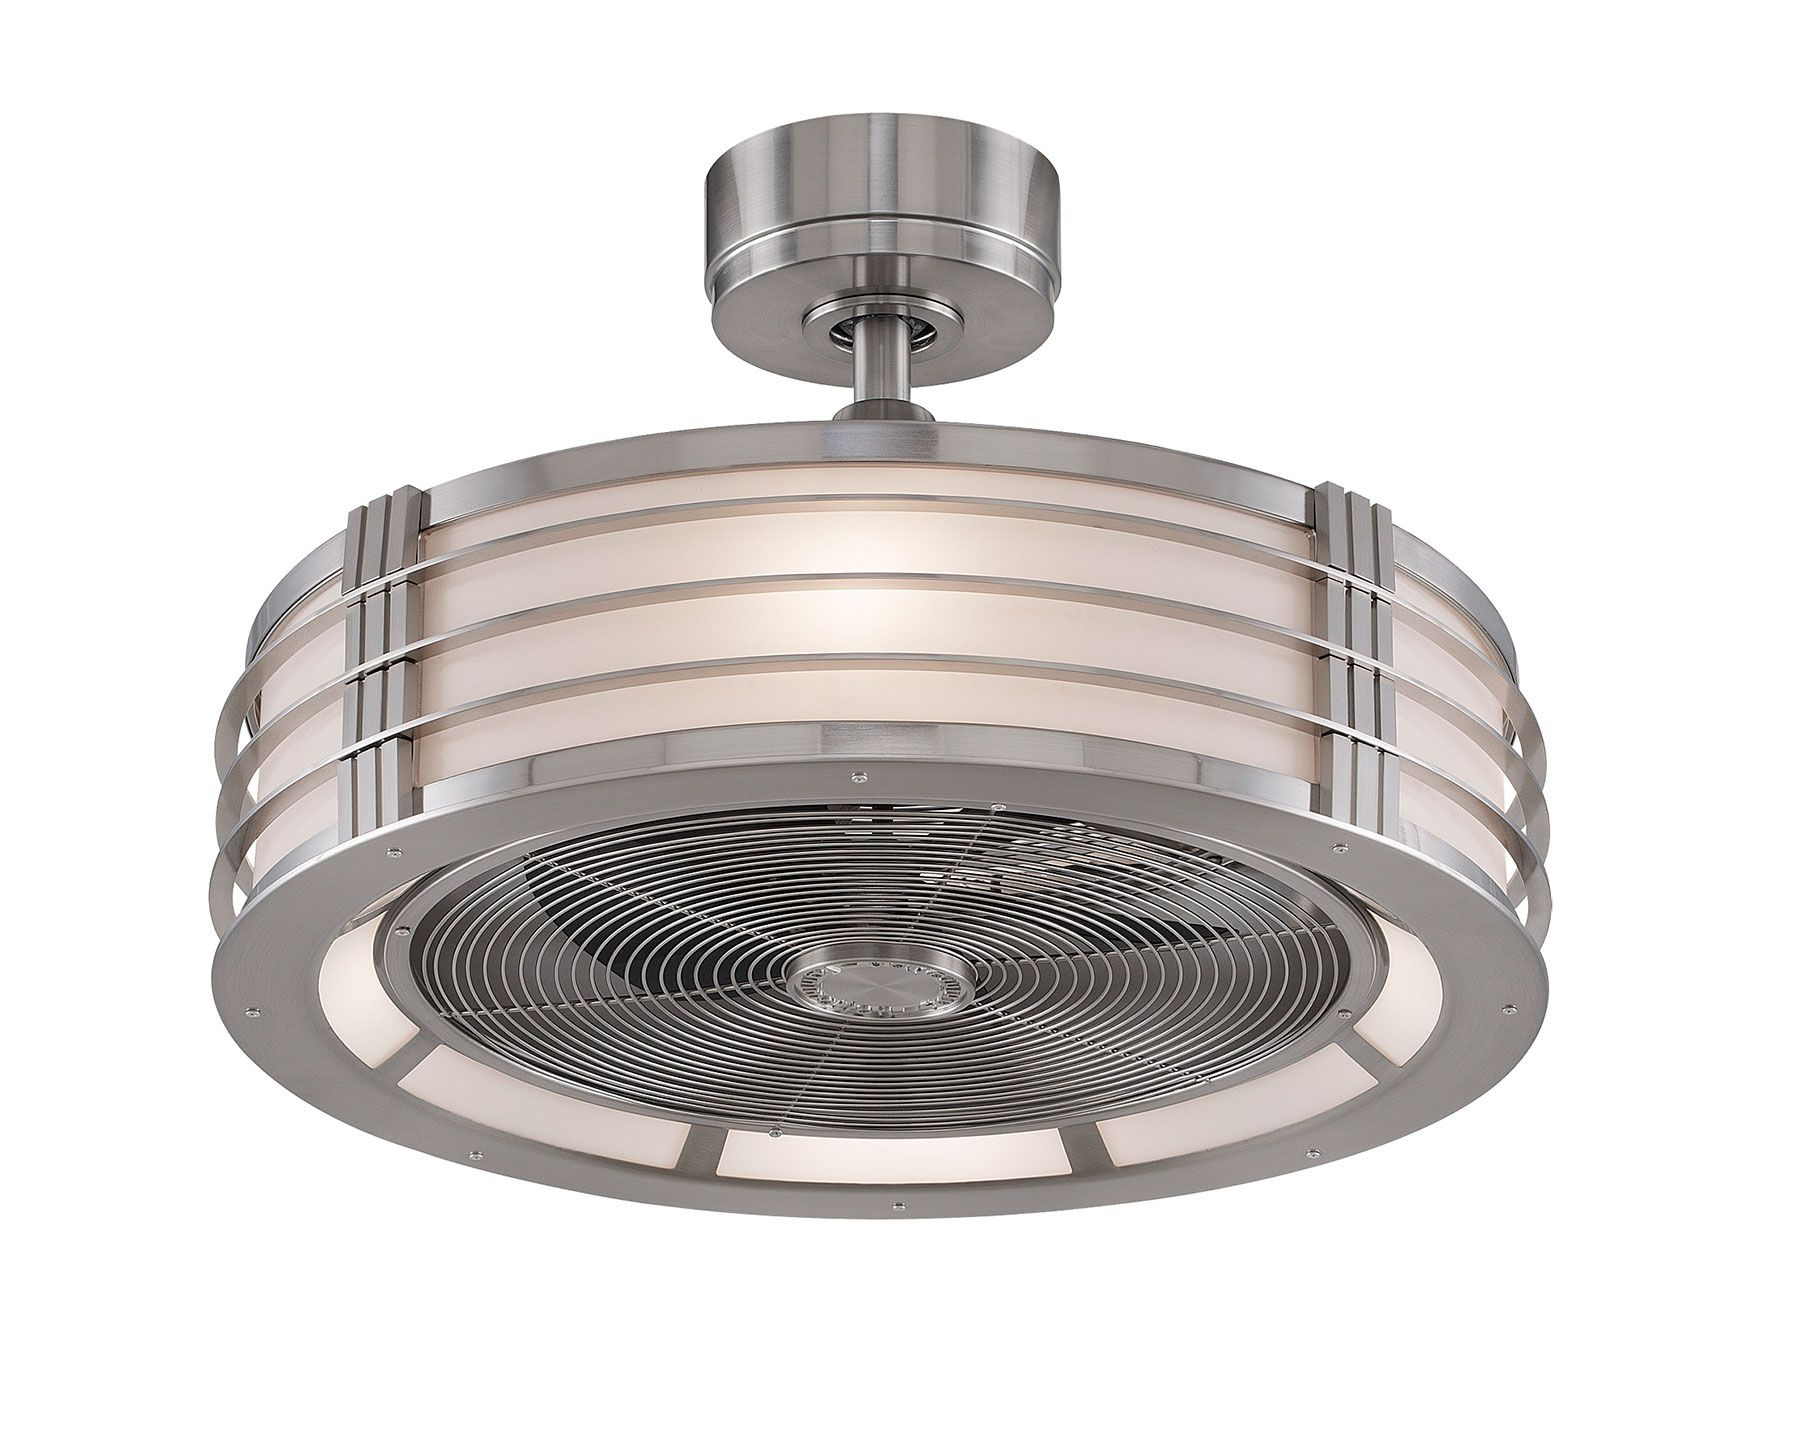 Beckwith Ceiling Fan By Fanimation Fp7964bn Modern Ceiling Fan Fanimation Ceiling Fan Led Ceiling Fan